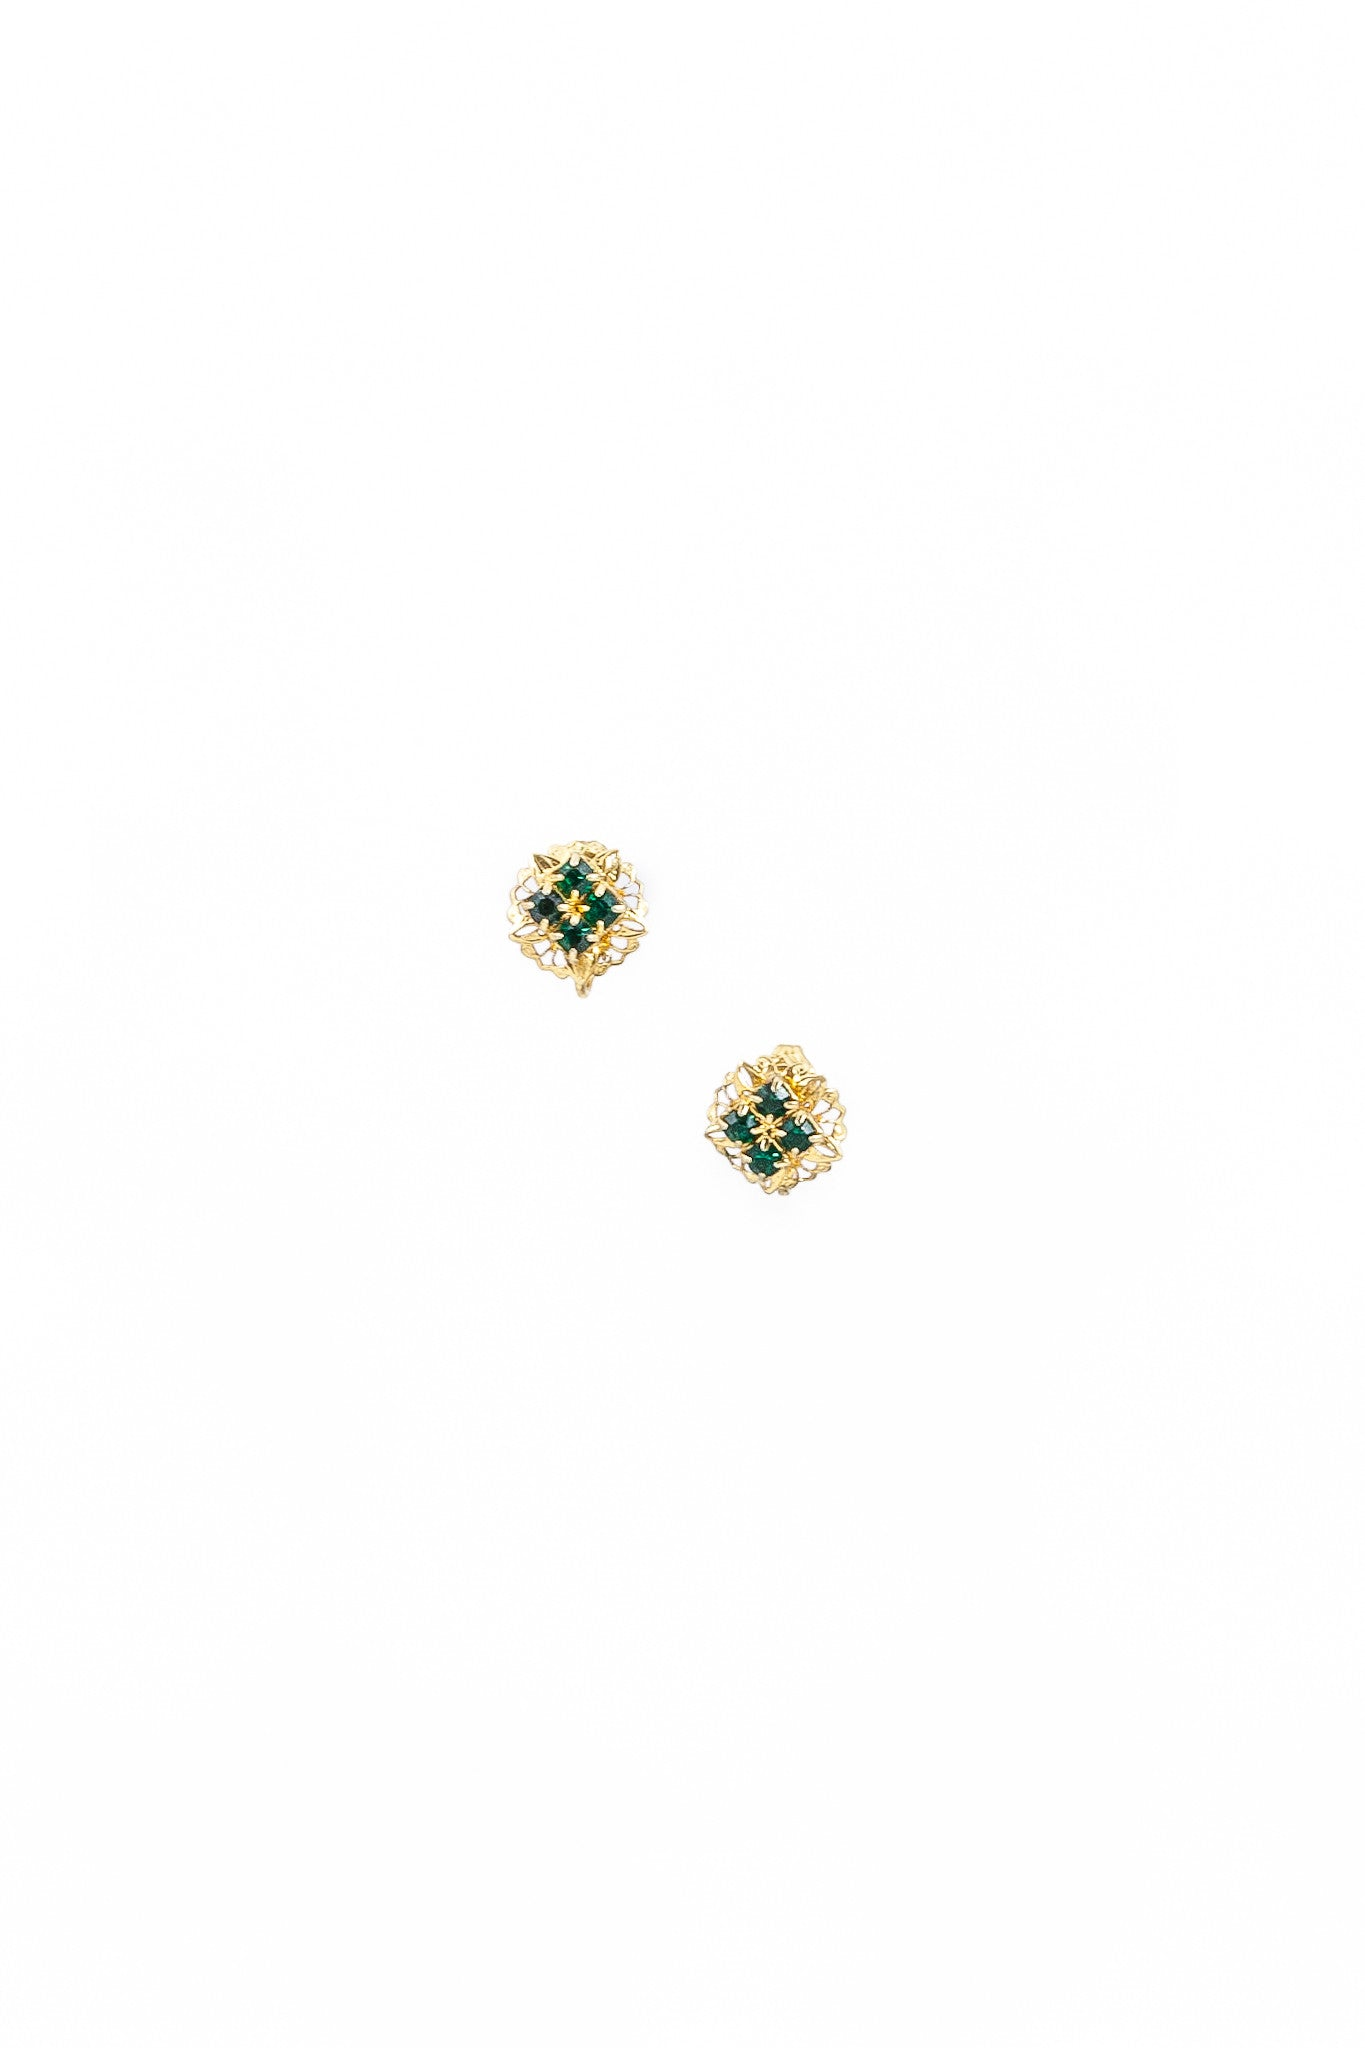 70's__Vintage__Emerald Stone Stud Clip-on Earrings